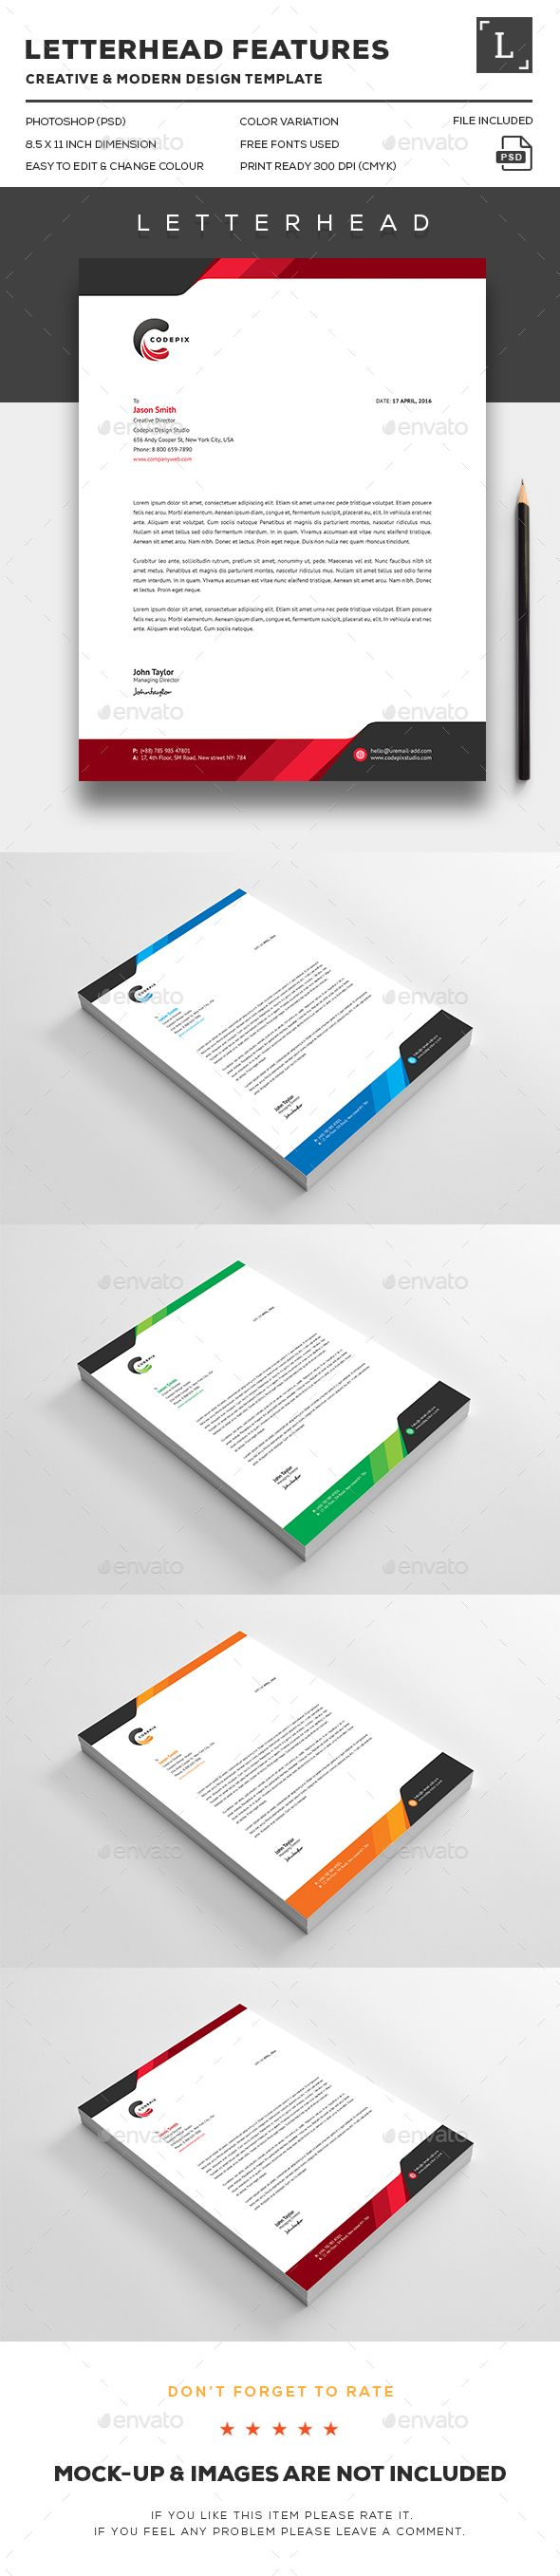 Letterhead Design Template - Stationery Print Template PSD. Download here: http://graphicriver.net/item/letterhead/16388835?ref=yinkira